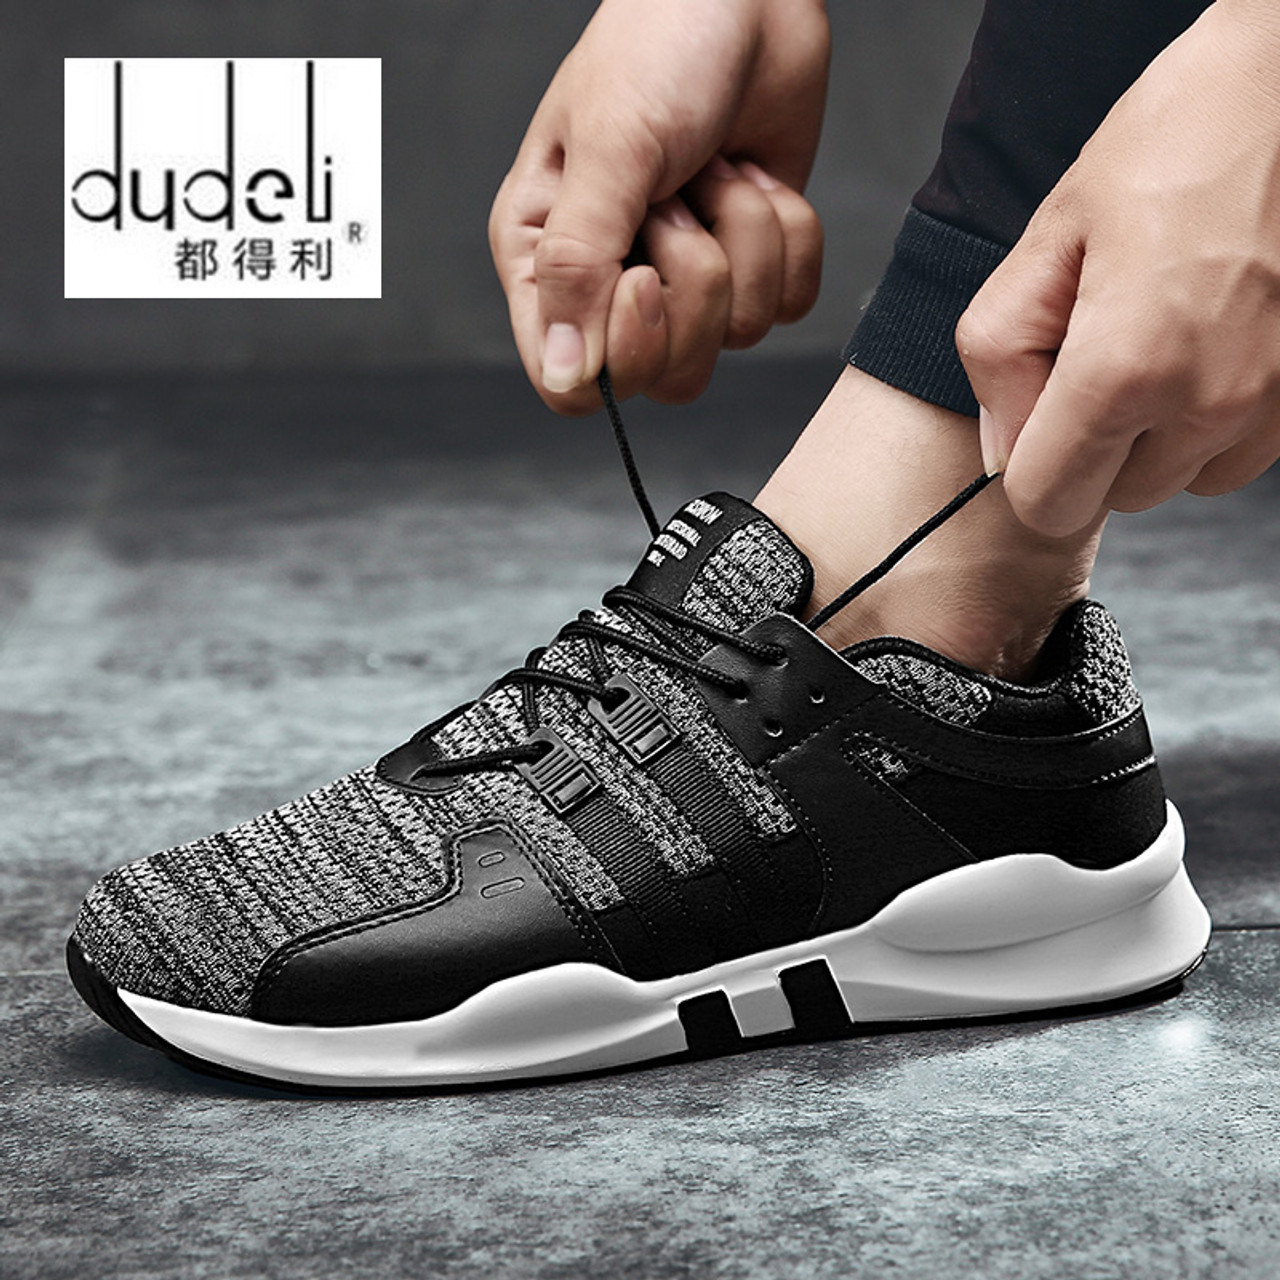 97bfcfba82559a DUDELI men fashion breathable casual shoes spring young Cheap high quality  Comfortable light sneakers Chaussures pour ...